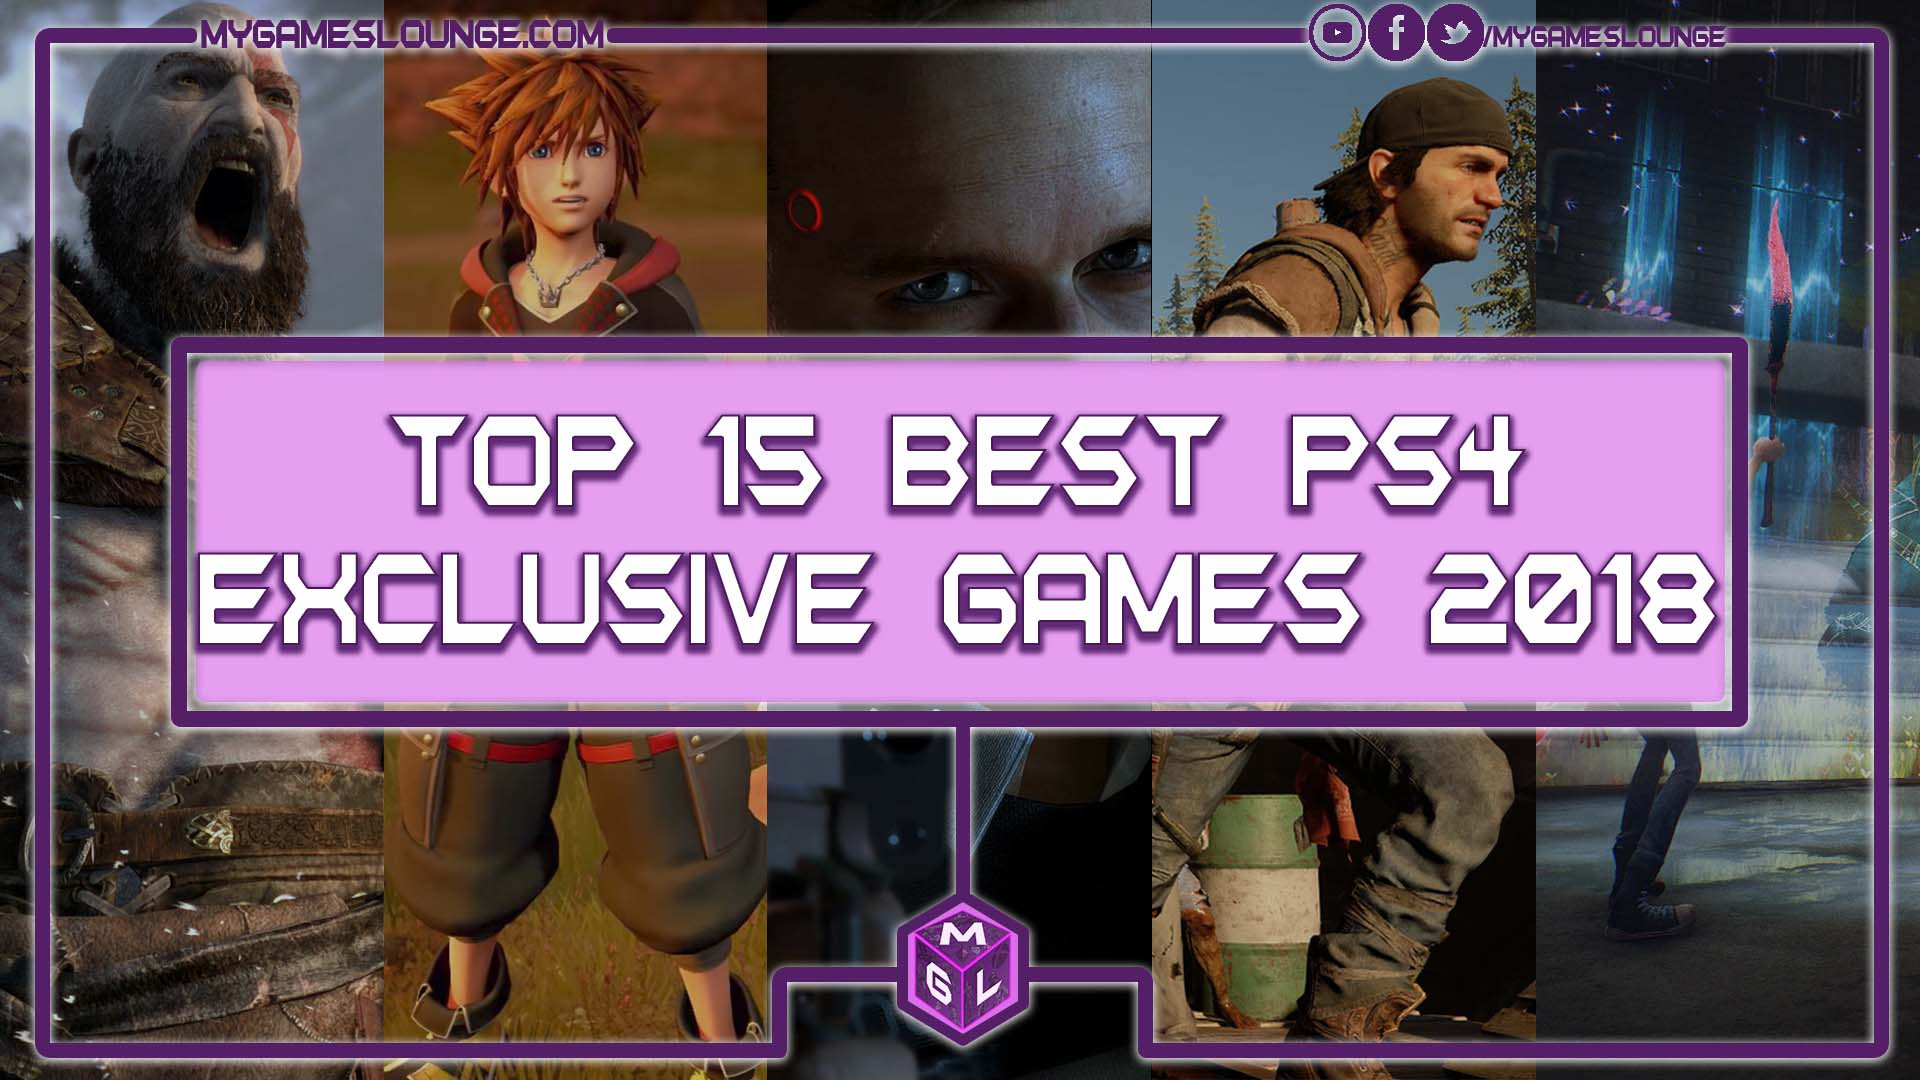 15 Best Upcoming PS4 Exclusive Games 2018 (And beyond!)